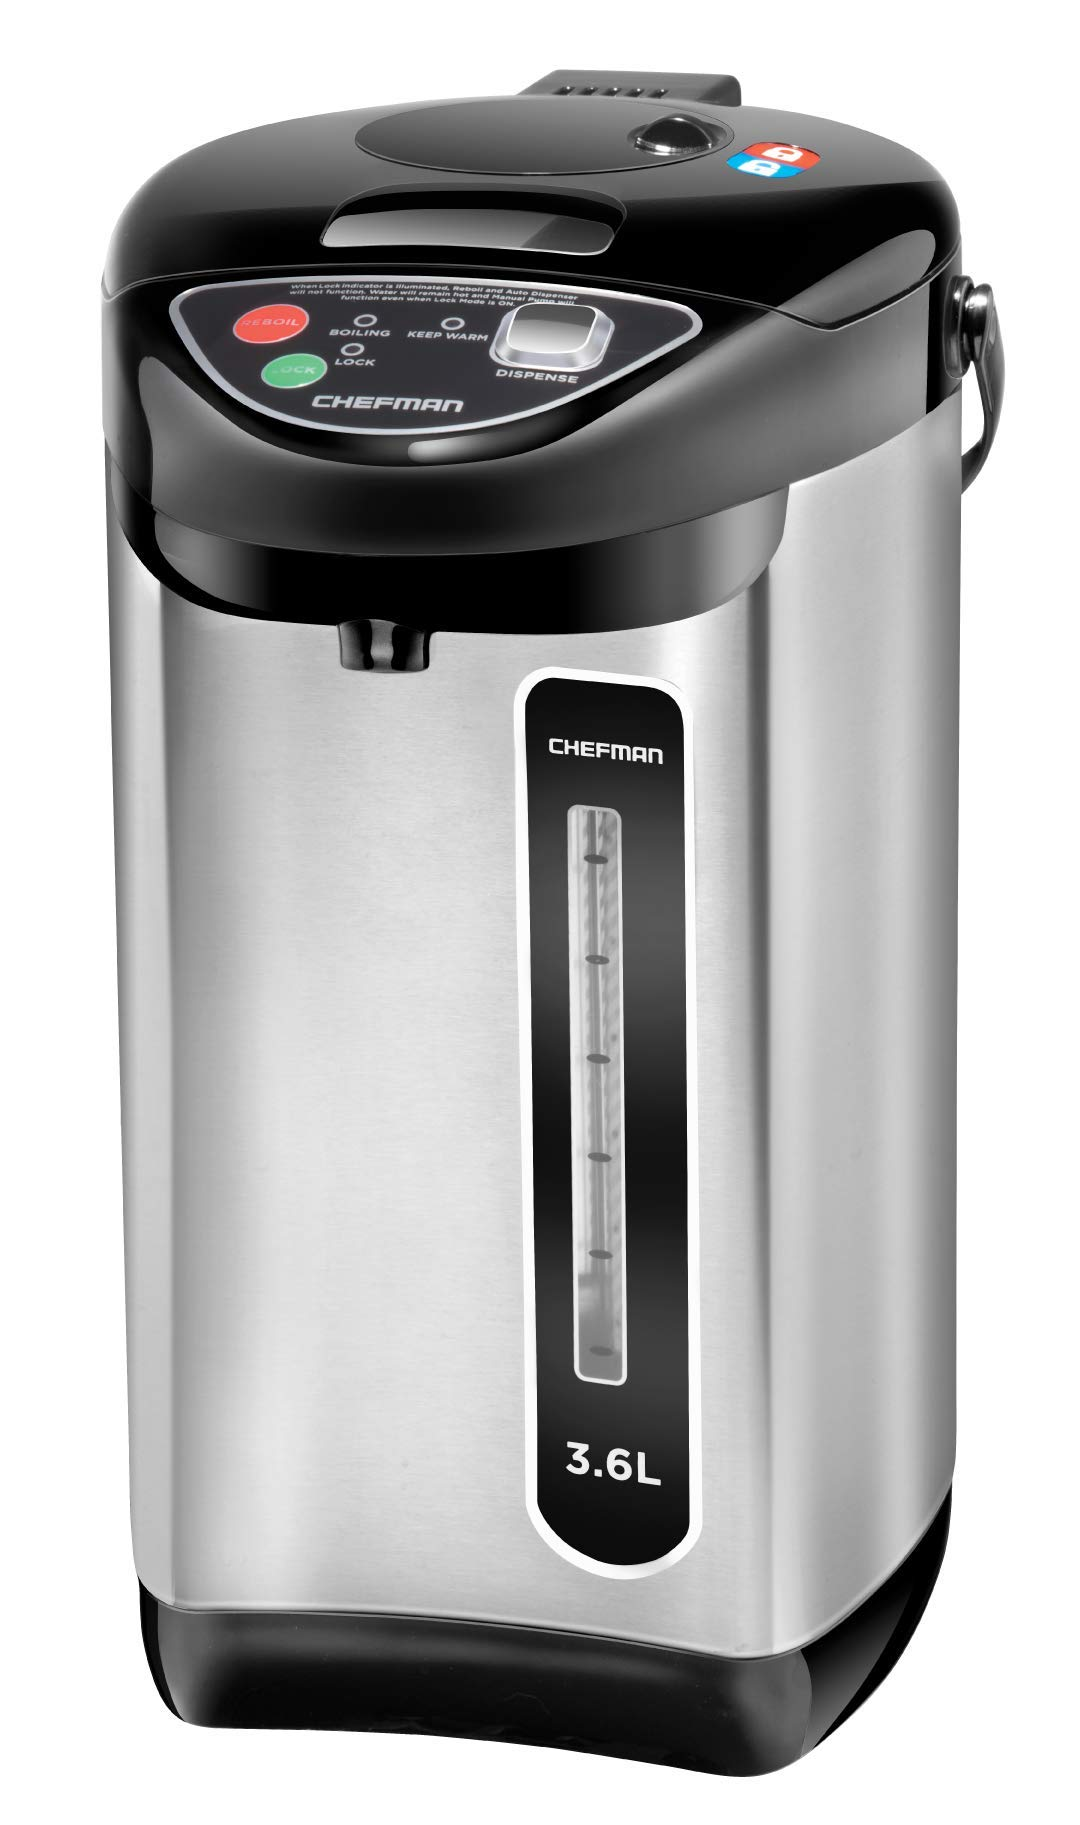 Chefman Instant Electric Hot Pot Coffee Urn w/Auto & Manual Dispense Buttons, Safety Lock, Easy Water View Window, Auto-Shutoff & Boil Dry Protection, Stainless Steel, 3.6L/3.8 qt/20+ Cups (Renewed) by Chefman